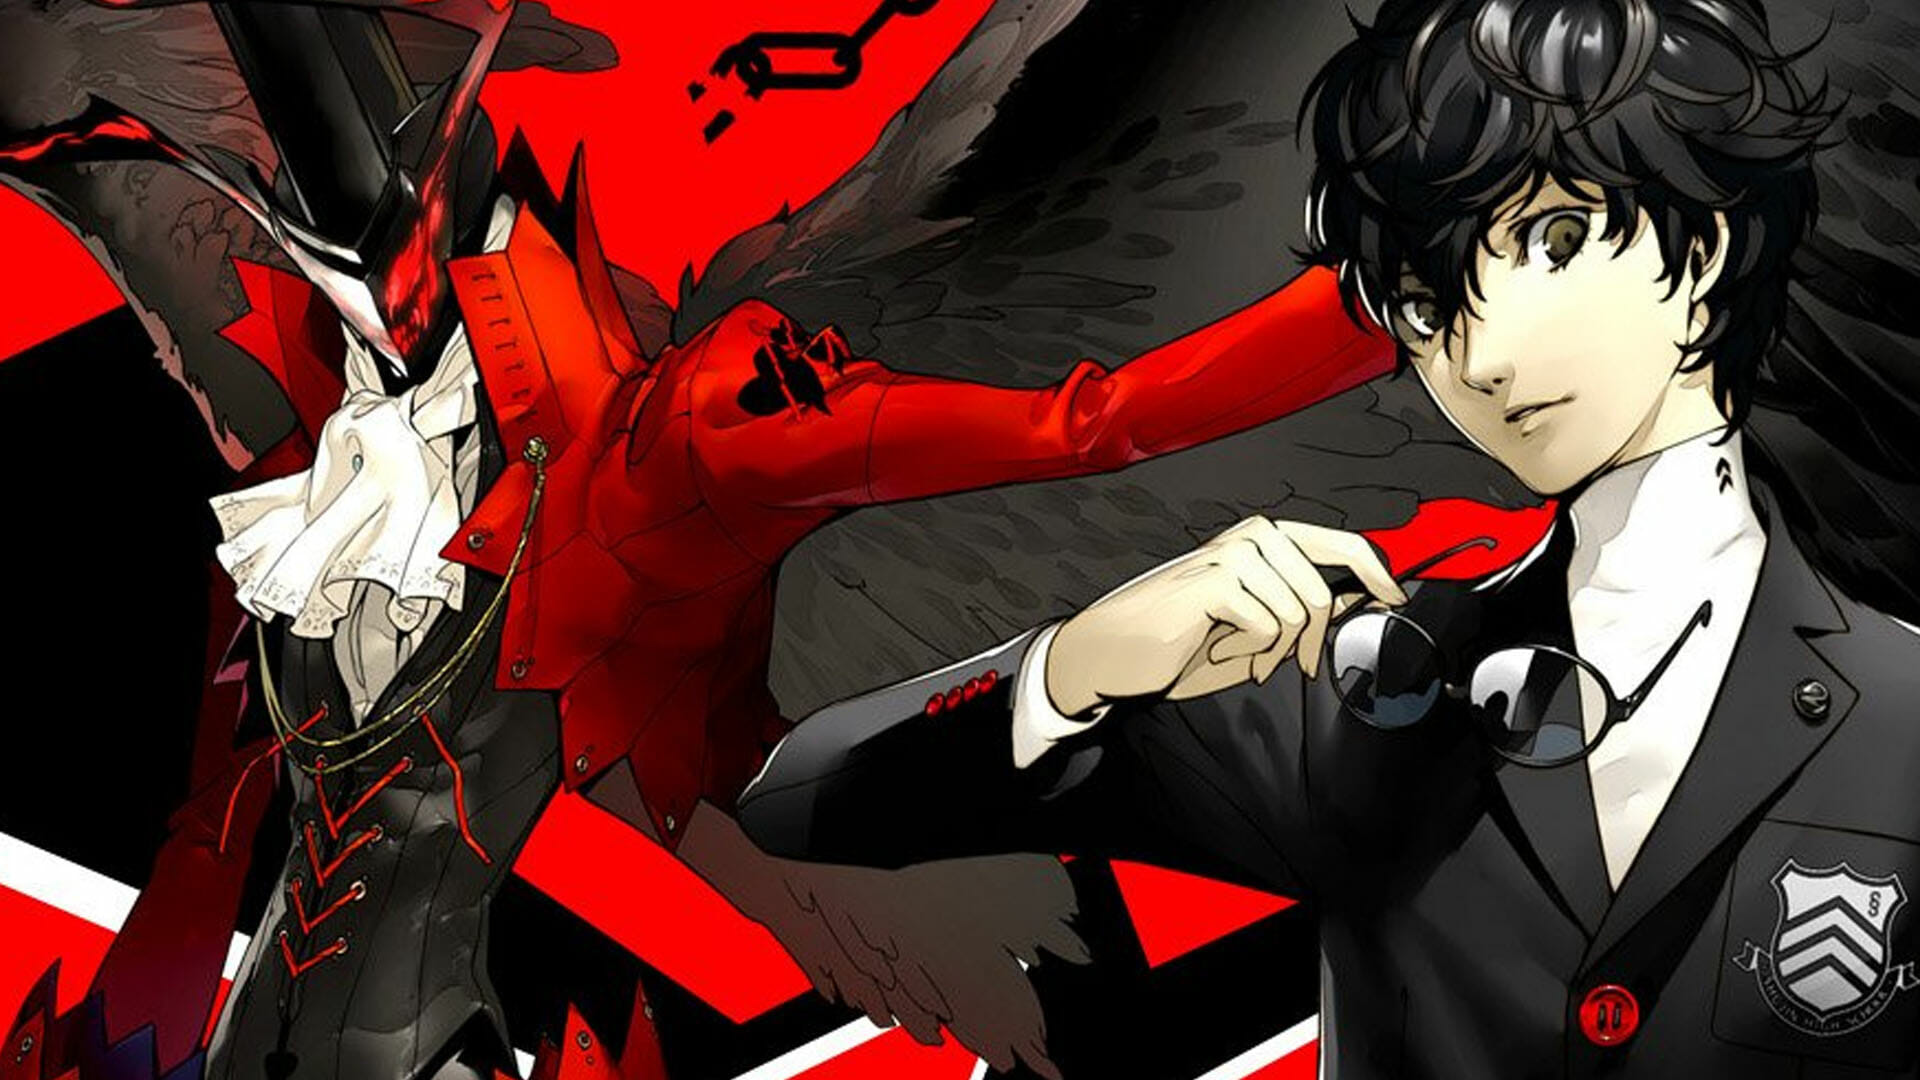 Persona 5 Guide: All Endings, Good, Bad and True Ending